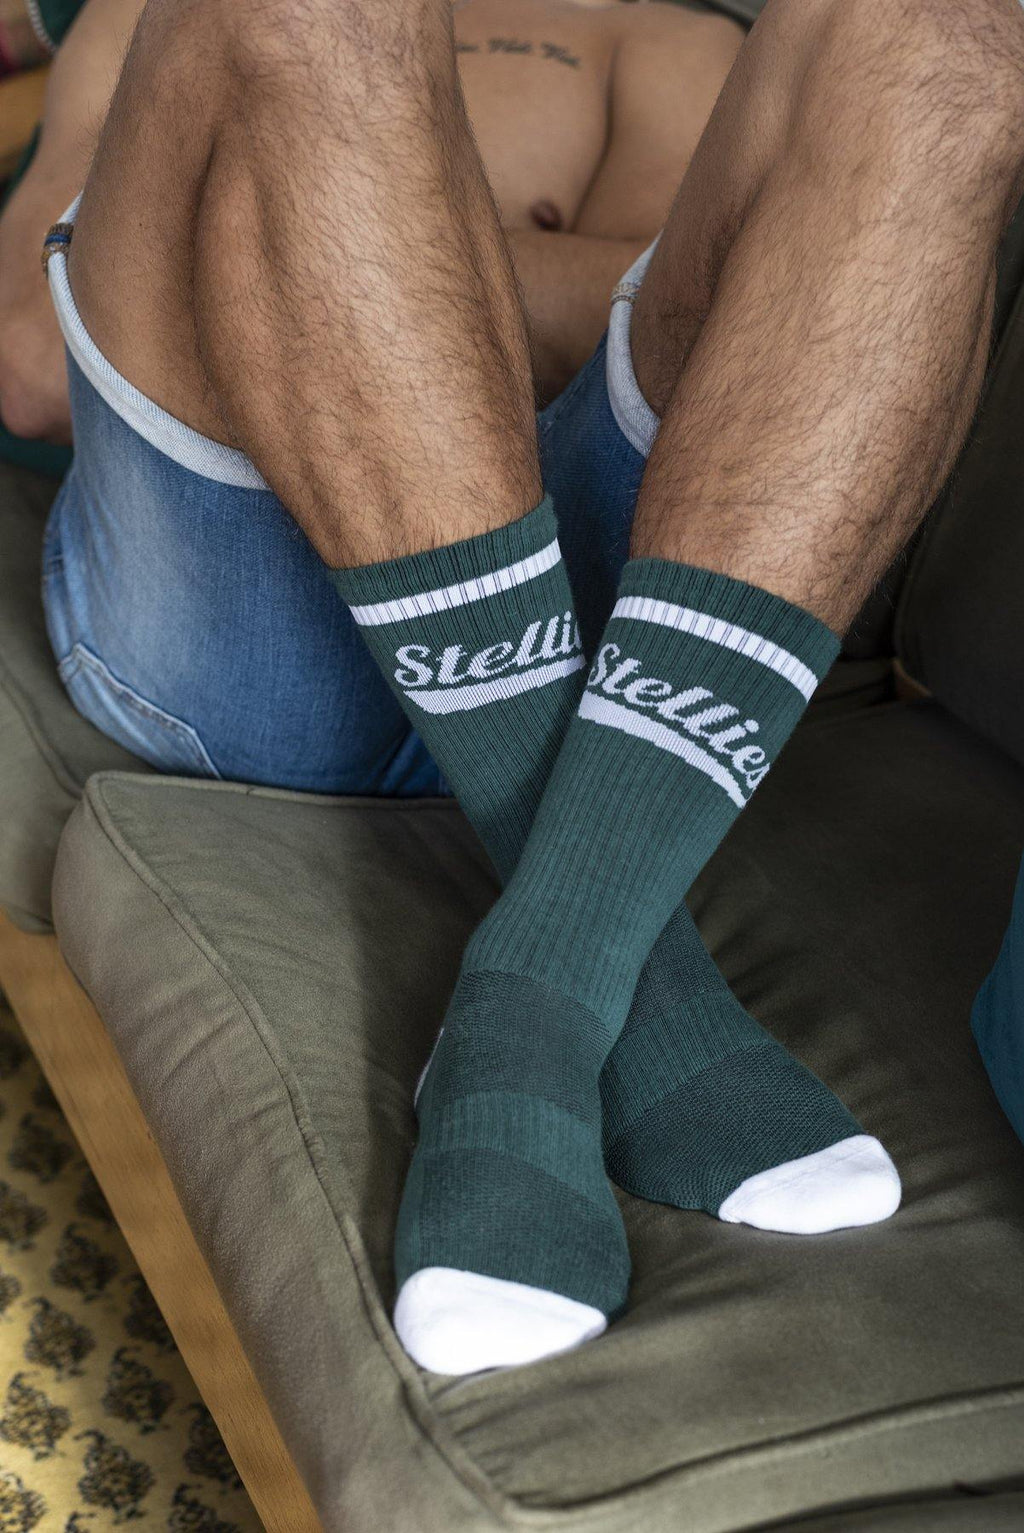 The Stellies Socks in Bottle Green